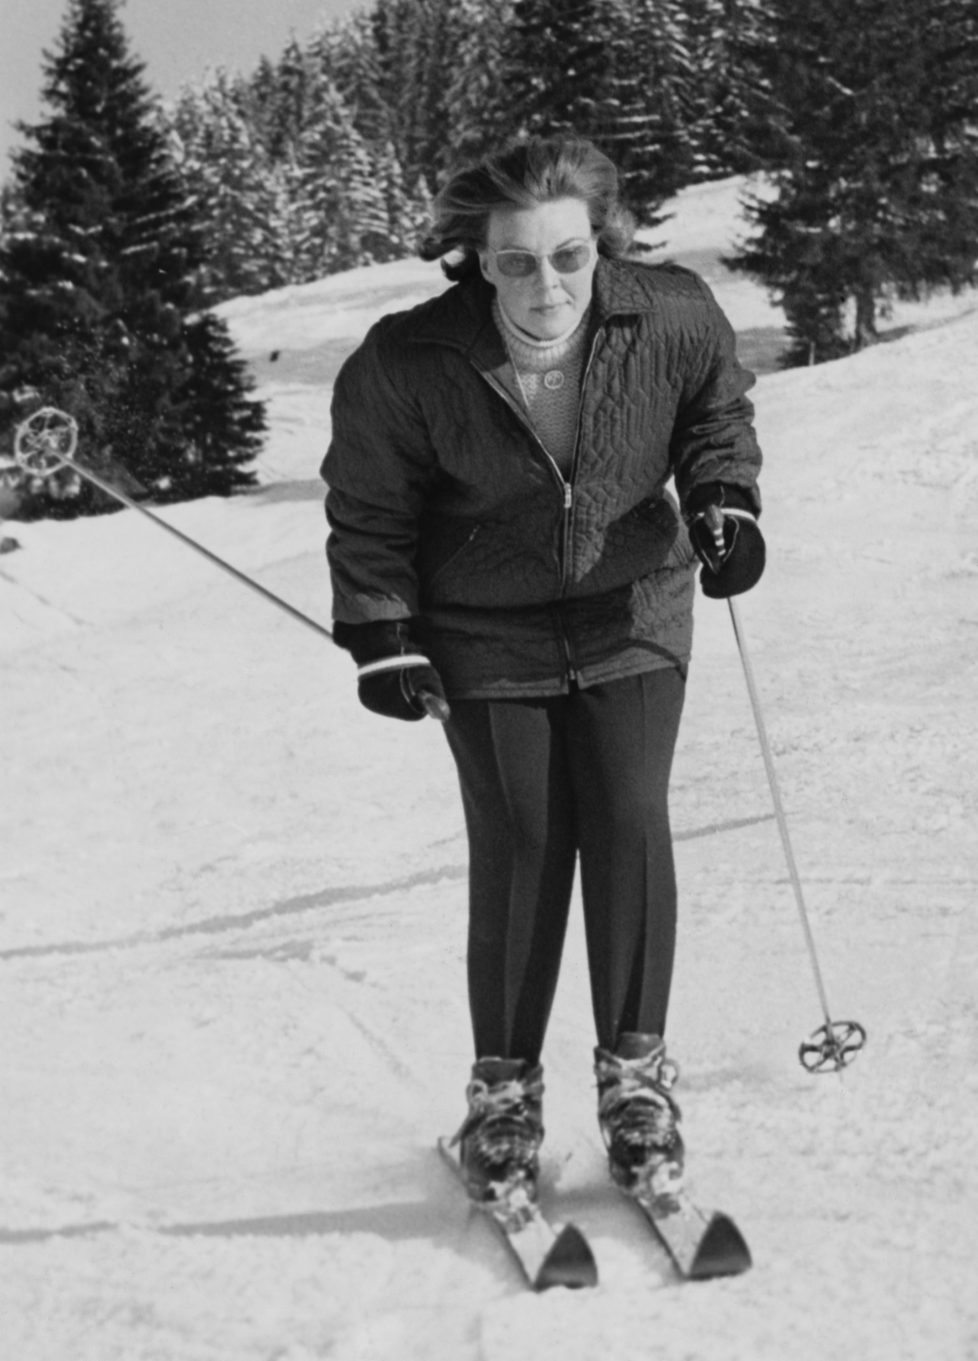 Princess Beatrix of the Netherlands skiing during a holiday in Gstaad, Switzerland, 4th February 1965. (Photo by Keystone/Hulton Archive/Getty Images) *** Local Caption *** Beatrix of the Netherlands